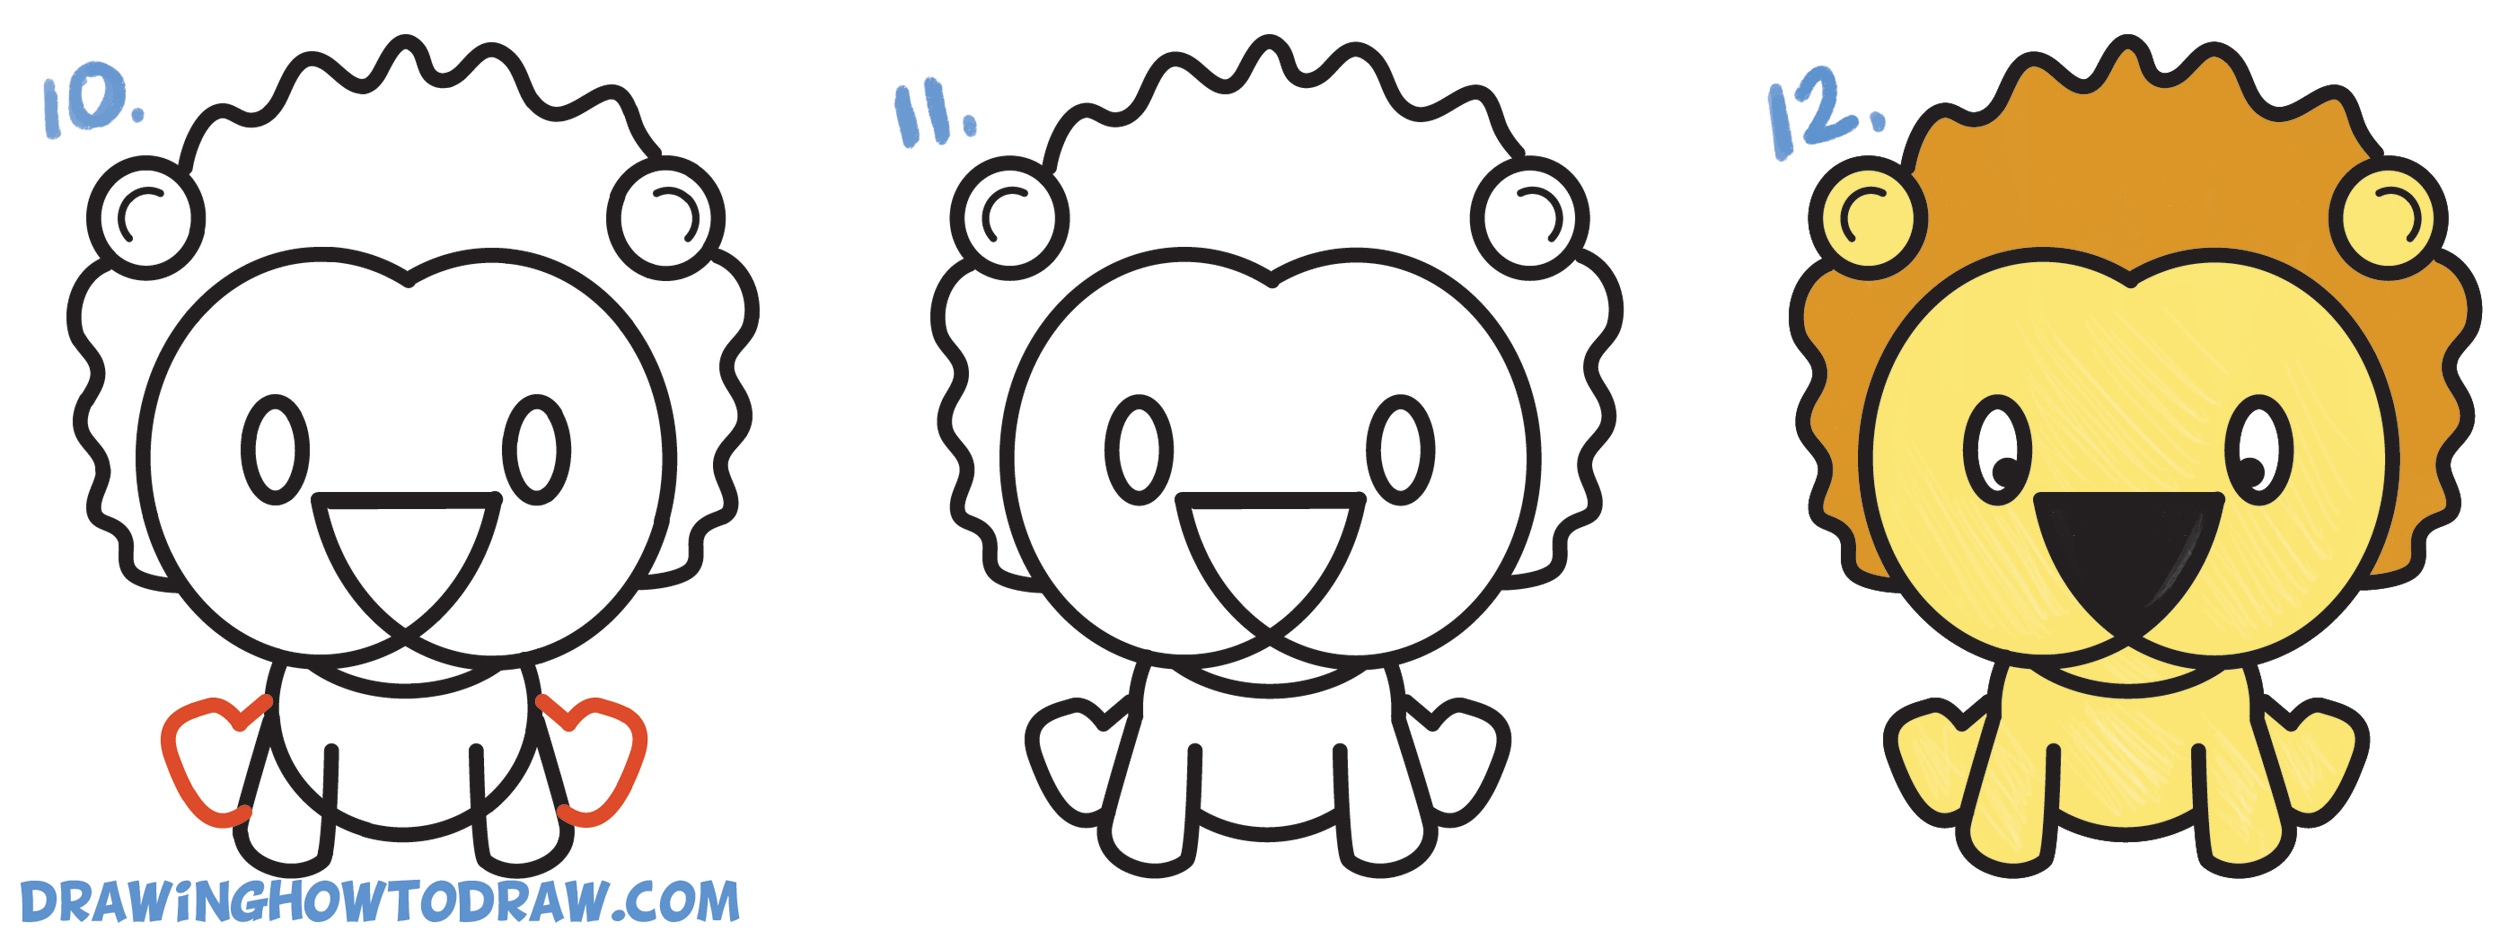 2500x940 Learn How To Draw A Cute Cartoon Lion From Letters G Amp G Easy